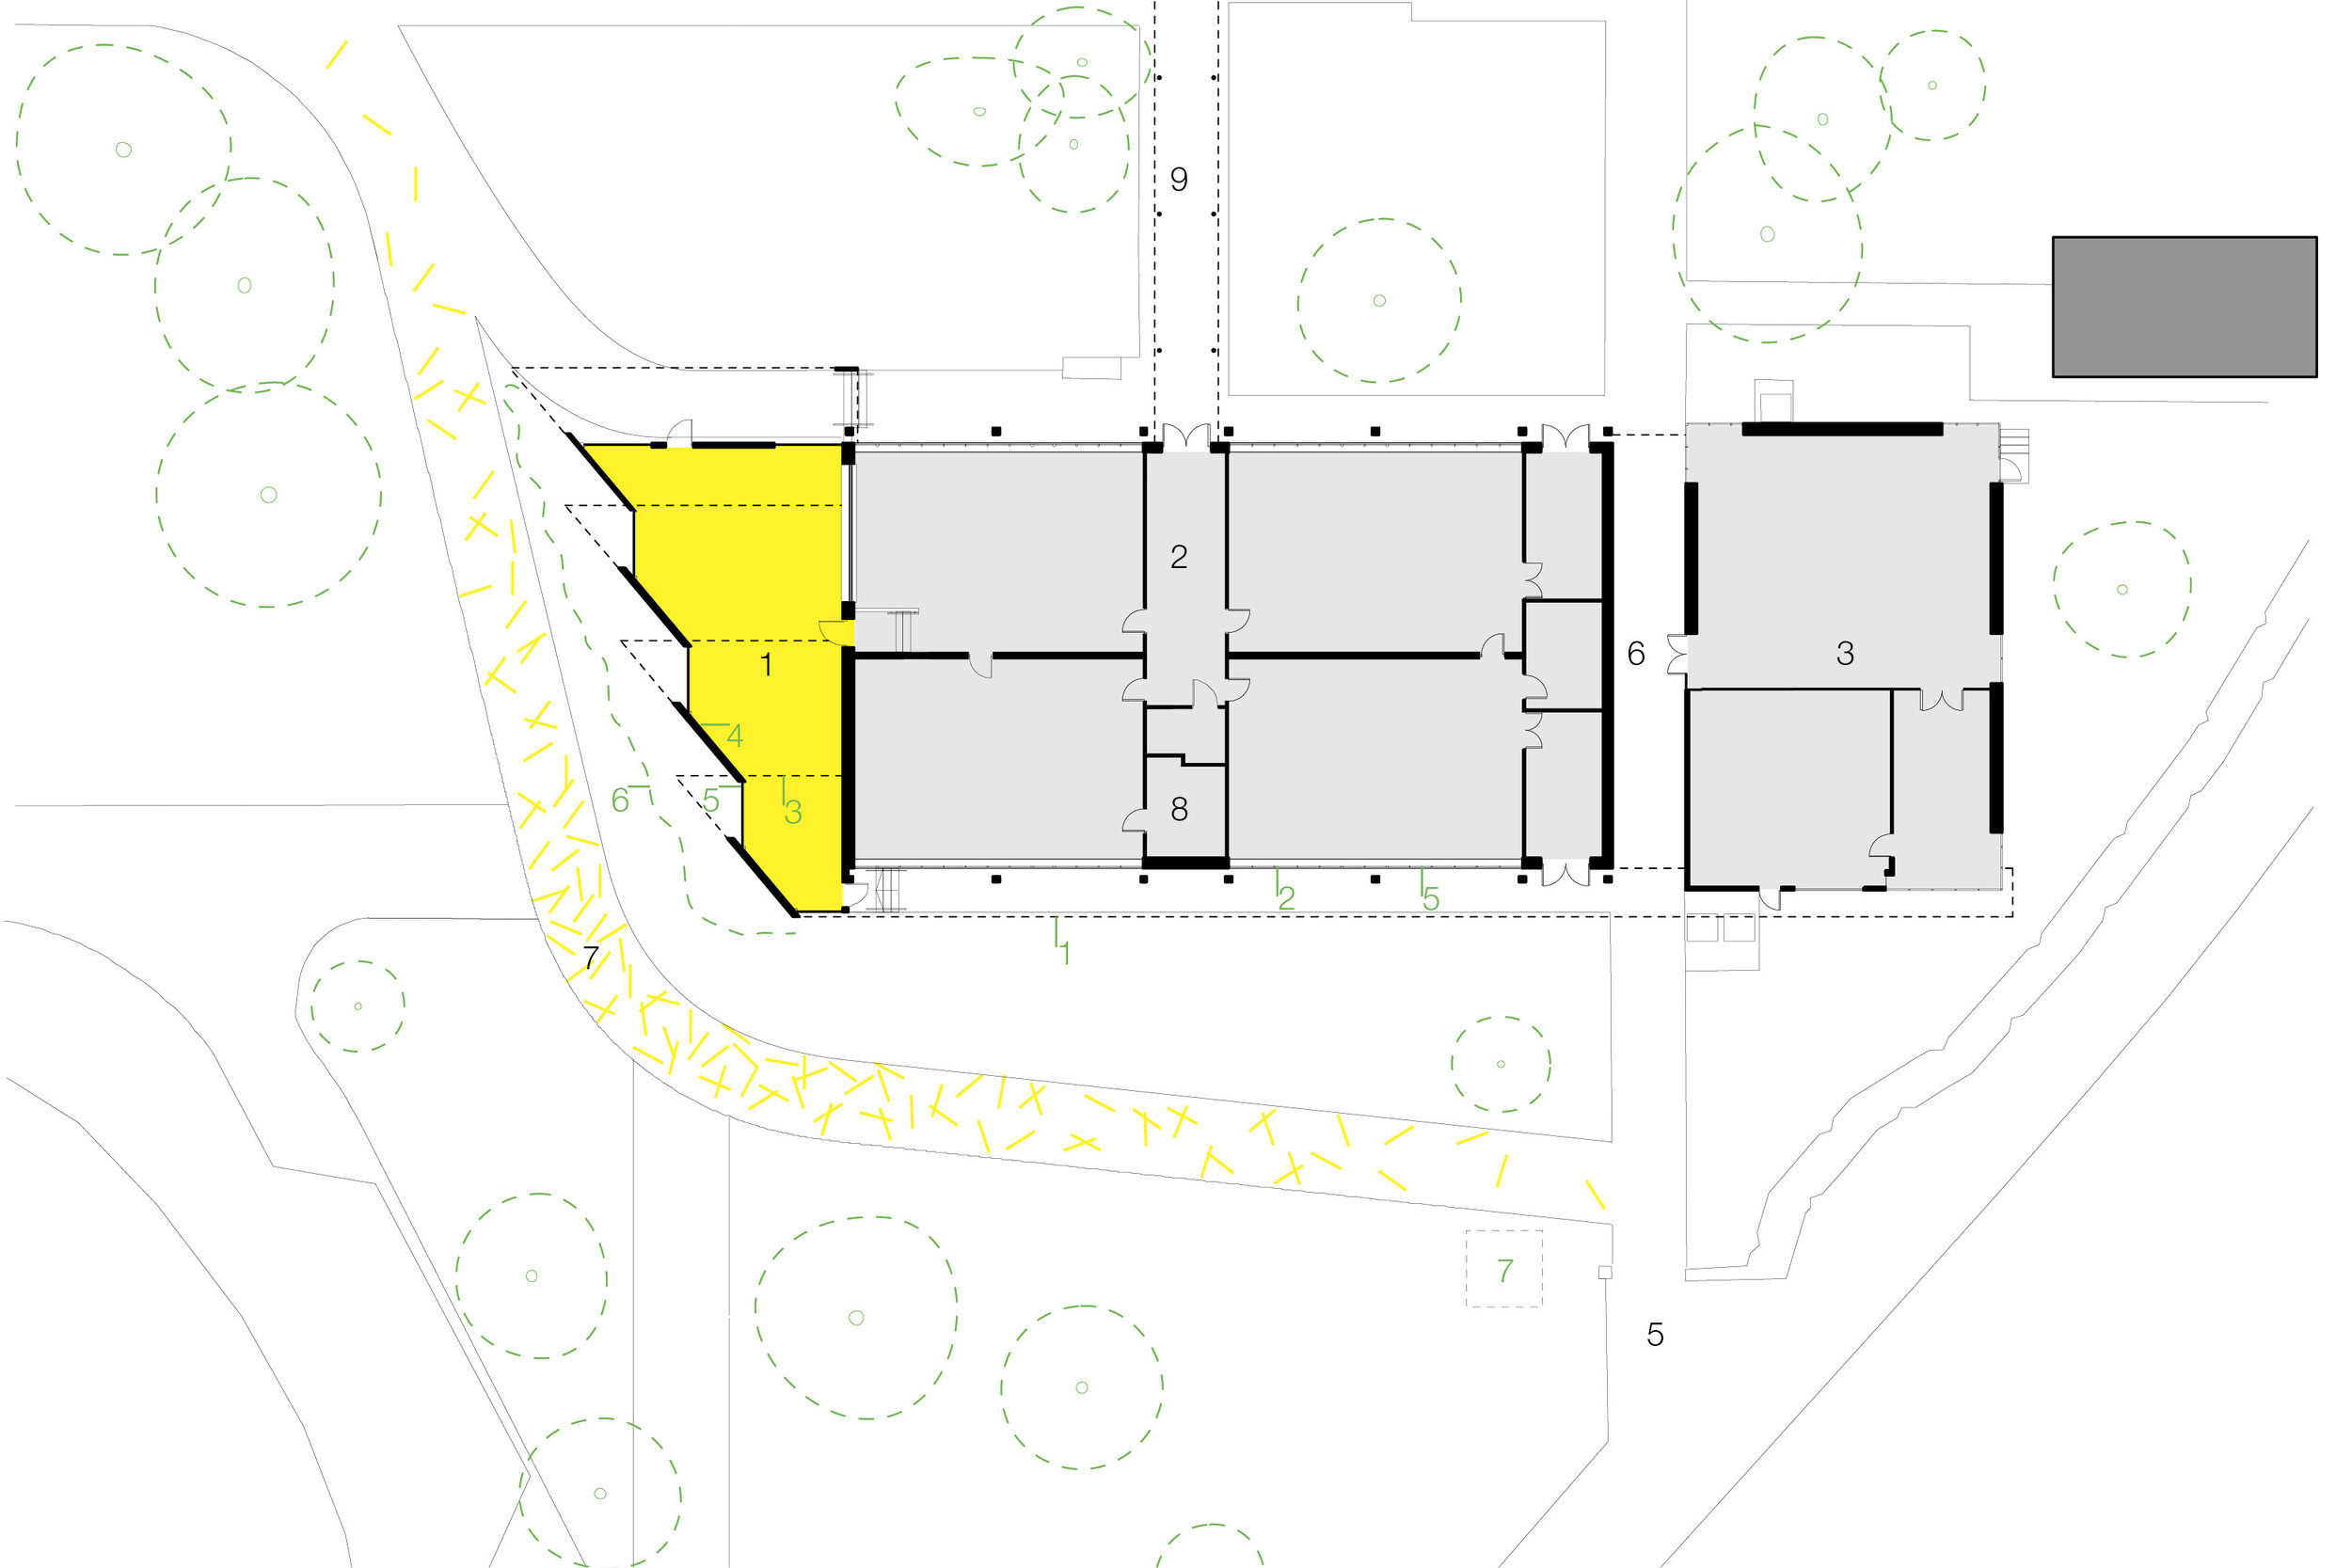 New Extension for Falmouth School by Mowat & Company